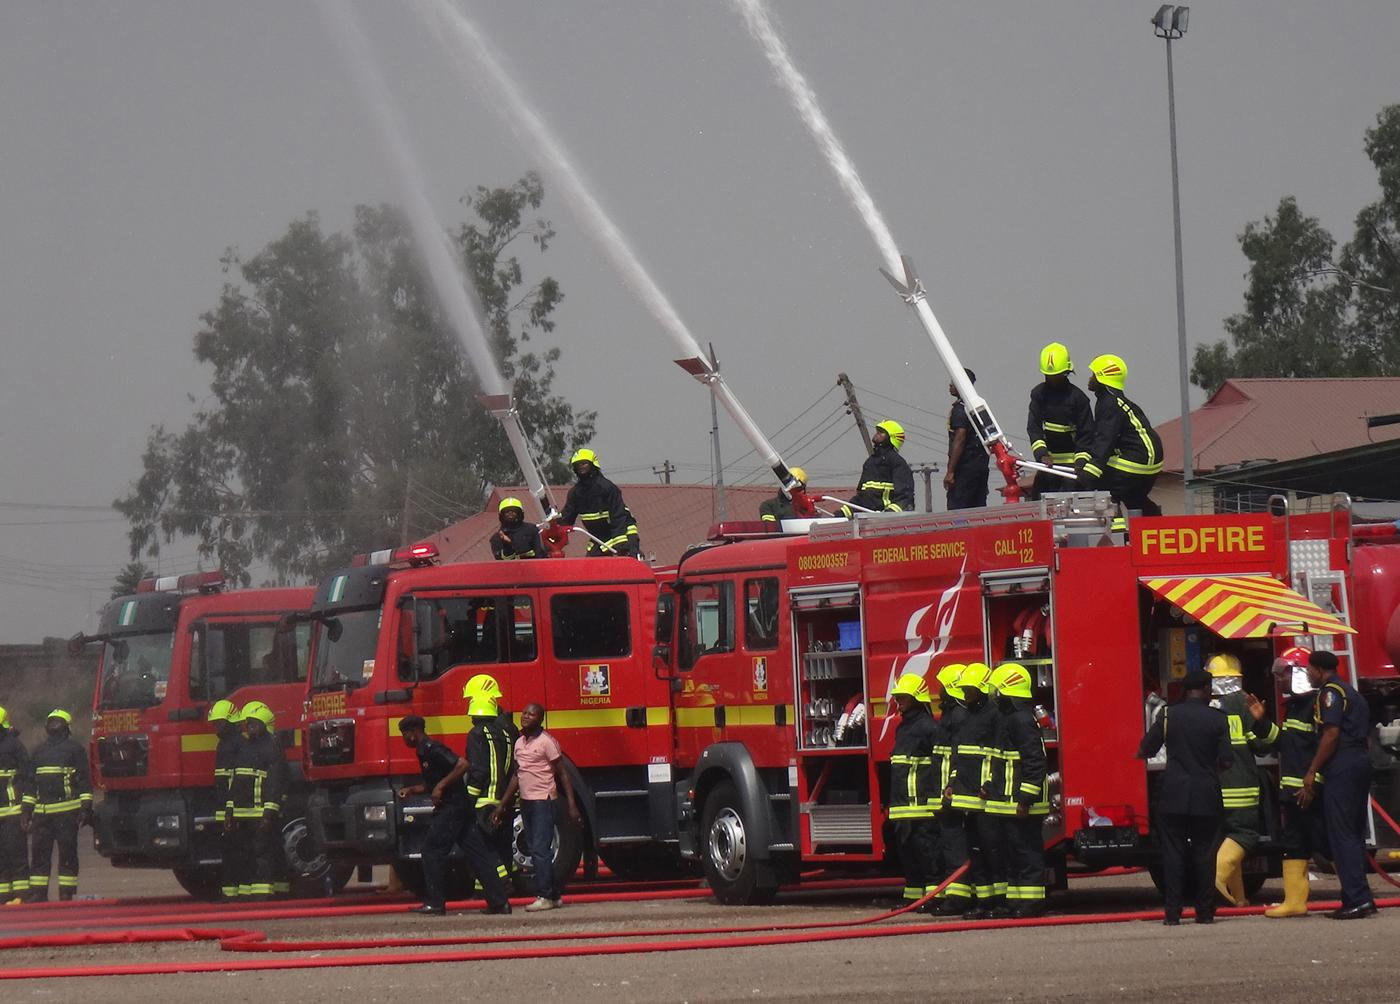 Federal Fire Service Recruitment for Fire Assistant II 2021